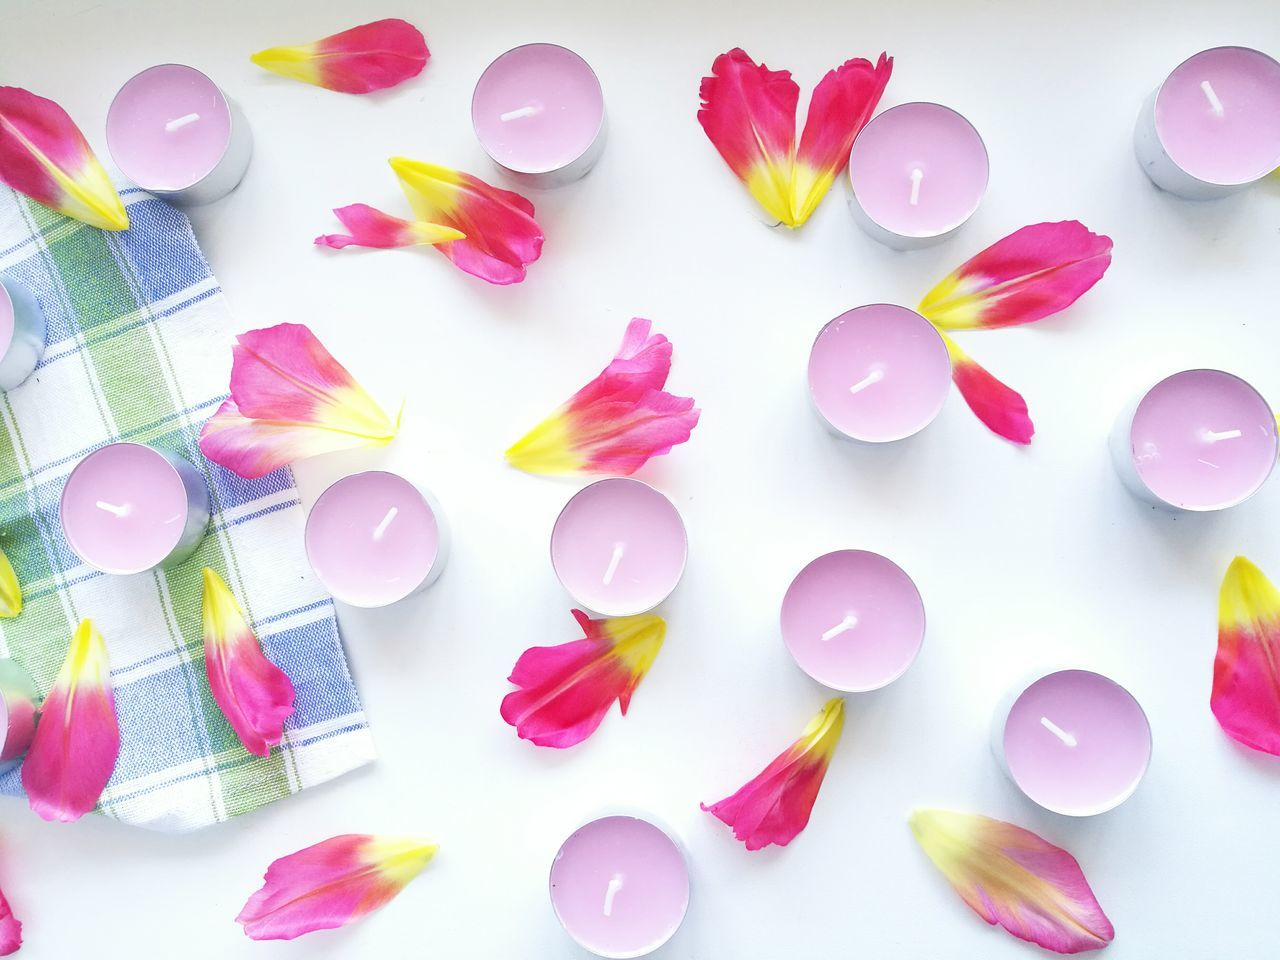 Millennial Pink Large Group Of Objects Flower Close-up No People Petals🌸 Aromatic Candle Pinkcolor Freshness Morning Light Natural Fresh Mood Positive Indoors  Home Background Composition Pink Color Stillife